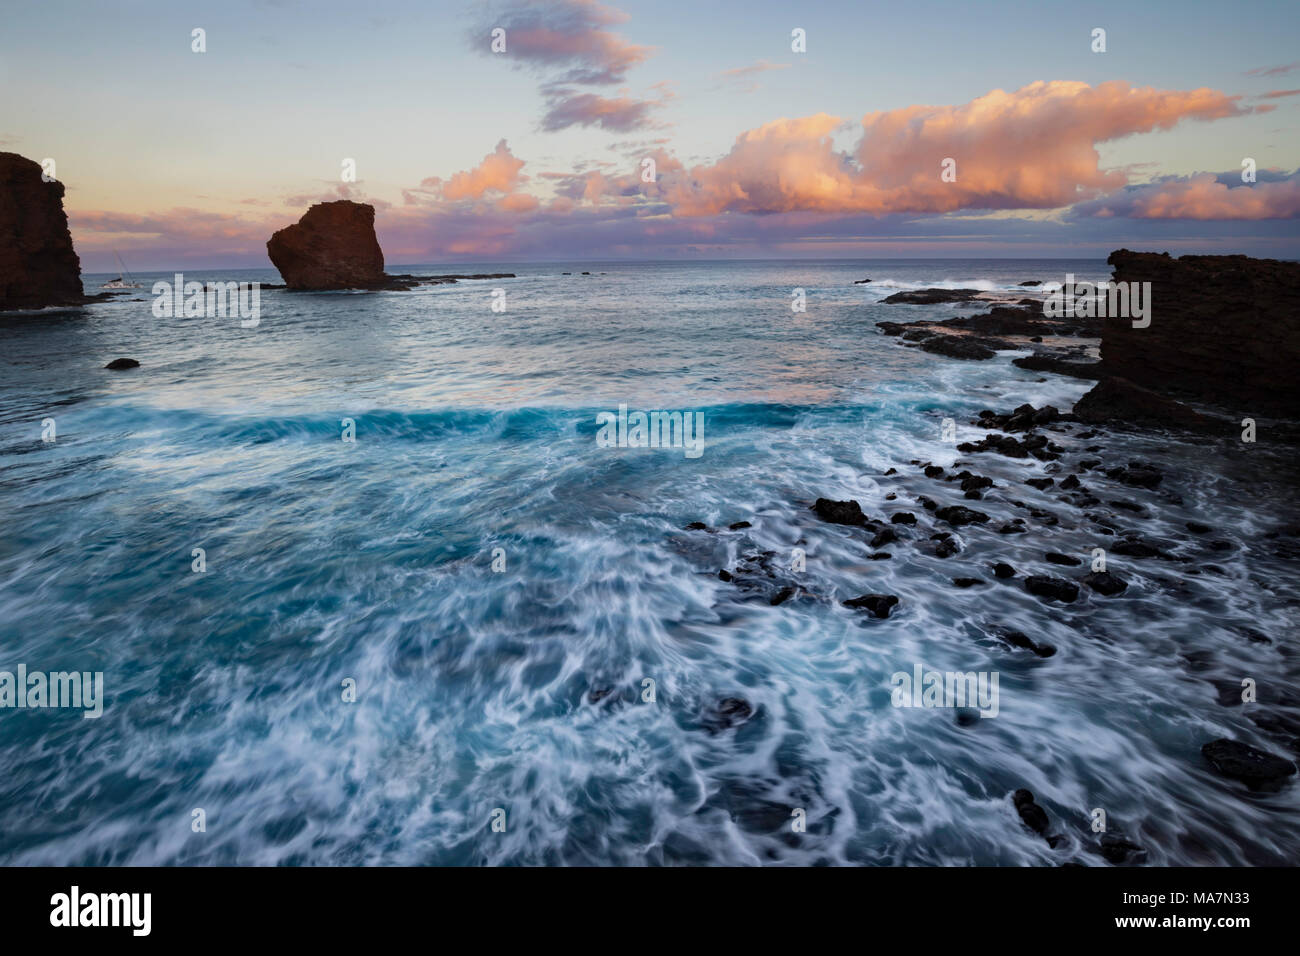 """Sunset light on the clouds above Puu Pehe Rock, also known as """"Sweetheart Rock"""", one of Lanai's most recognizable landmarks, Lanai Island, Hawaii, USA - Stock Image"""